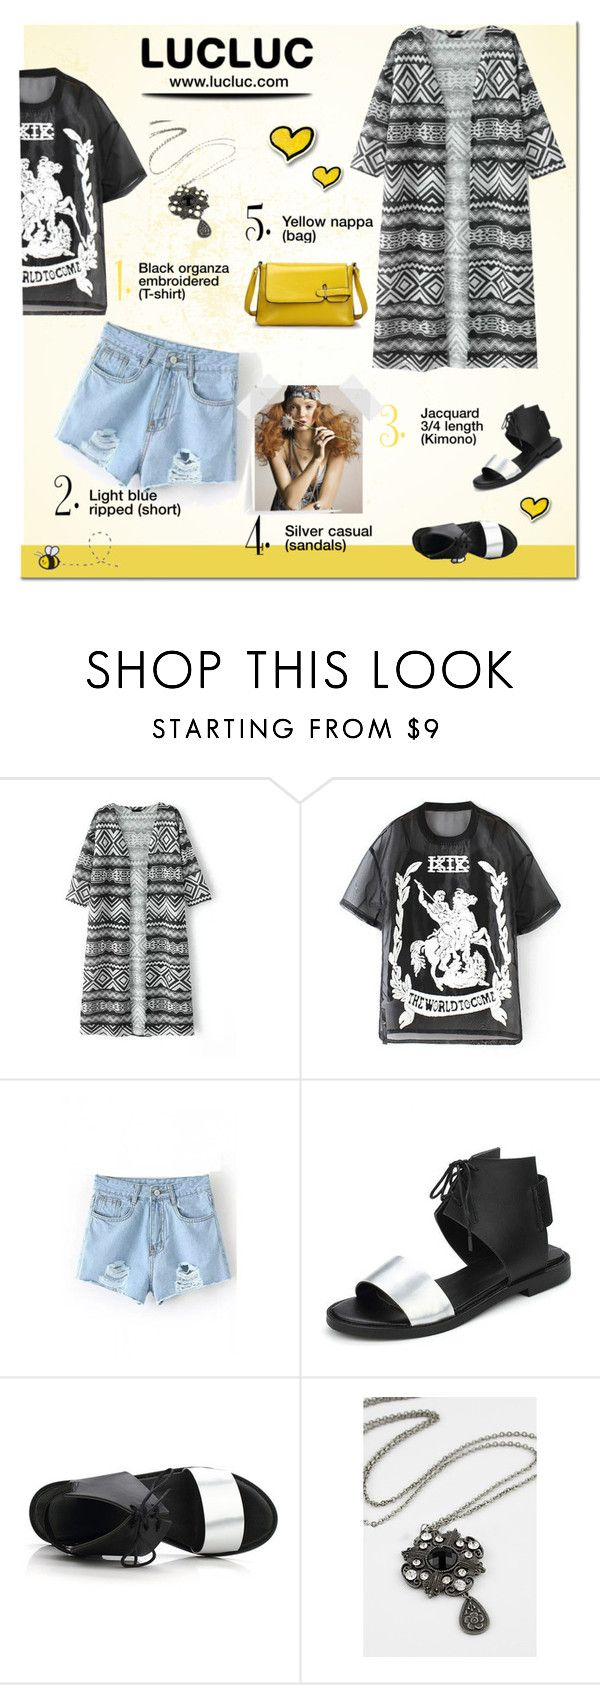 """""""lucluc"""" by alves-nogueira ❤ liked on Polyvore featuring mode, Tiffany & Co. et lucluc"""